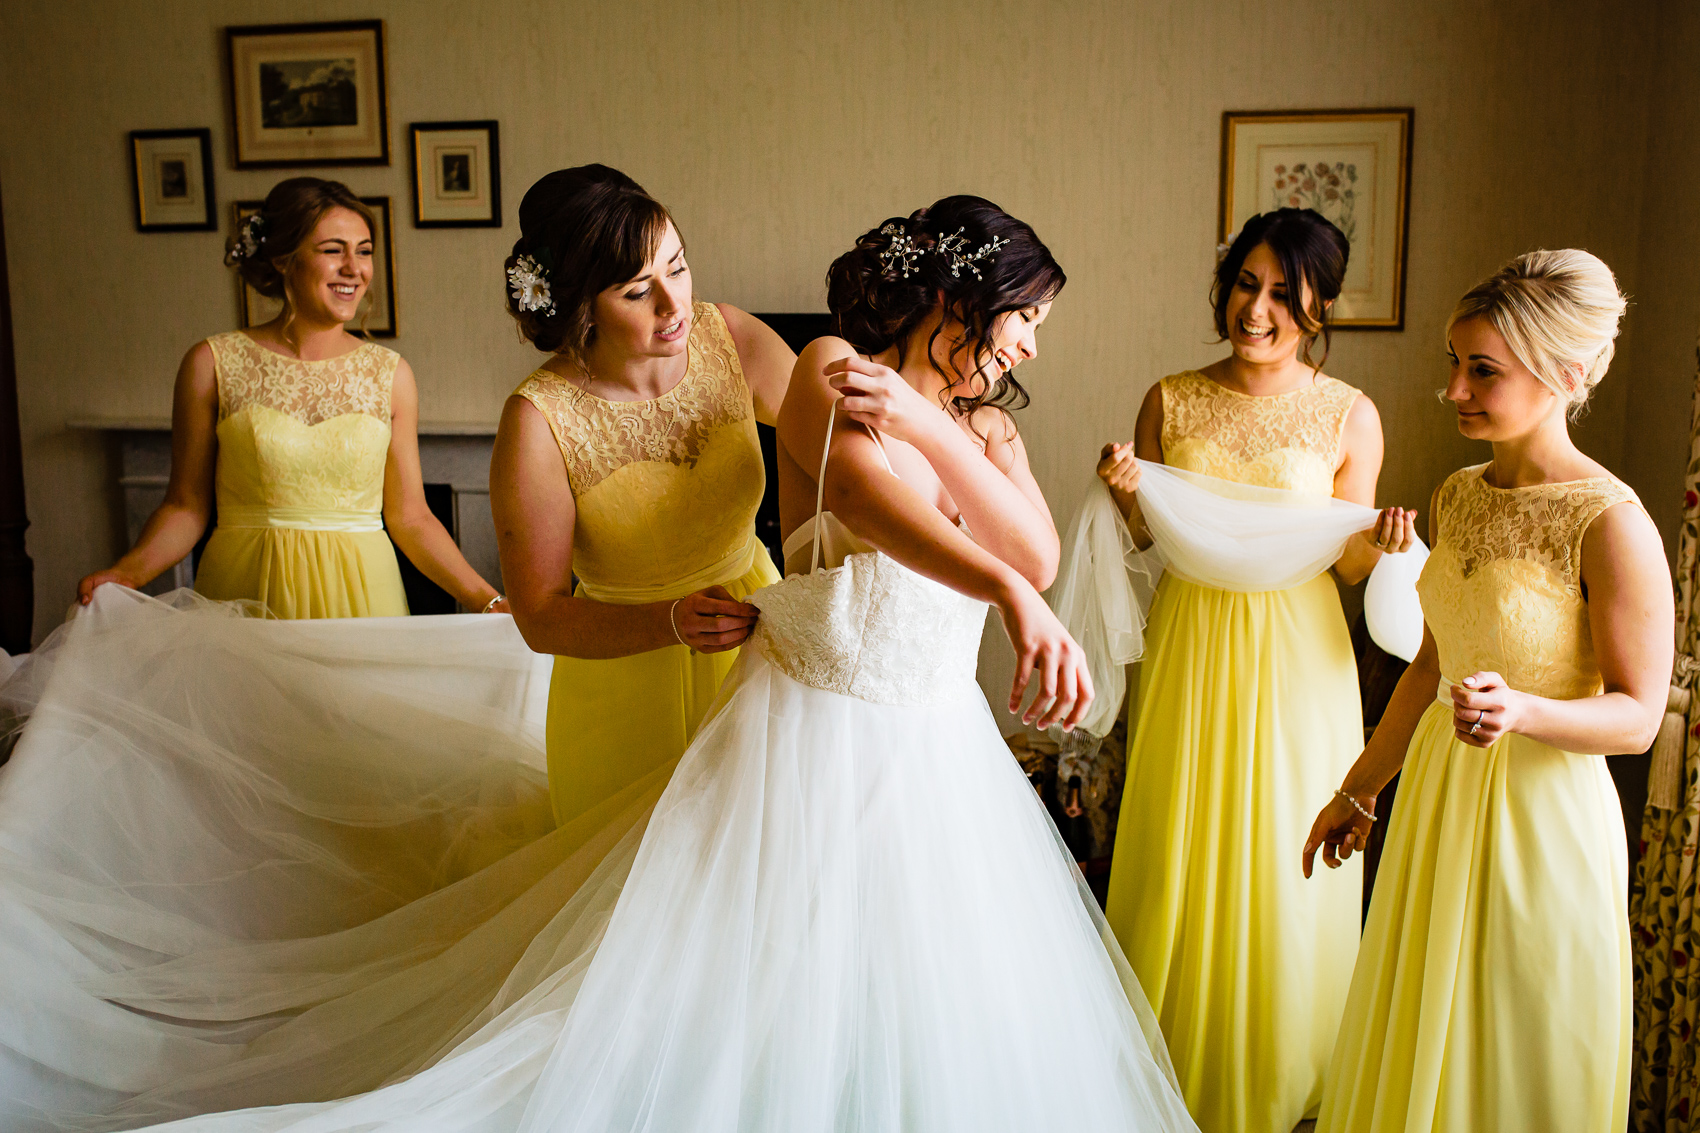 putting on a wedding dress with bridesmaids